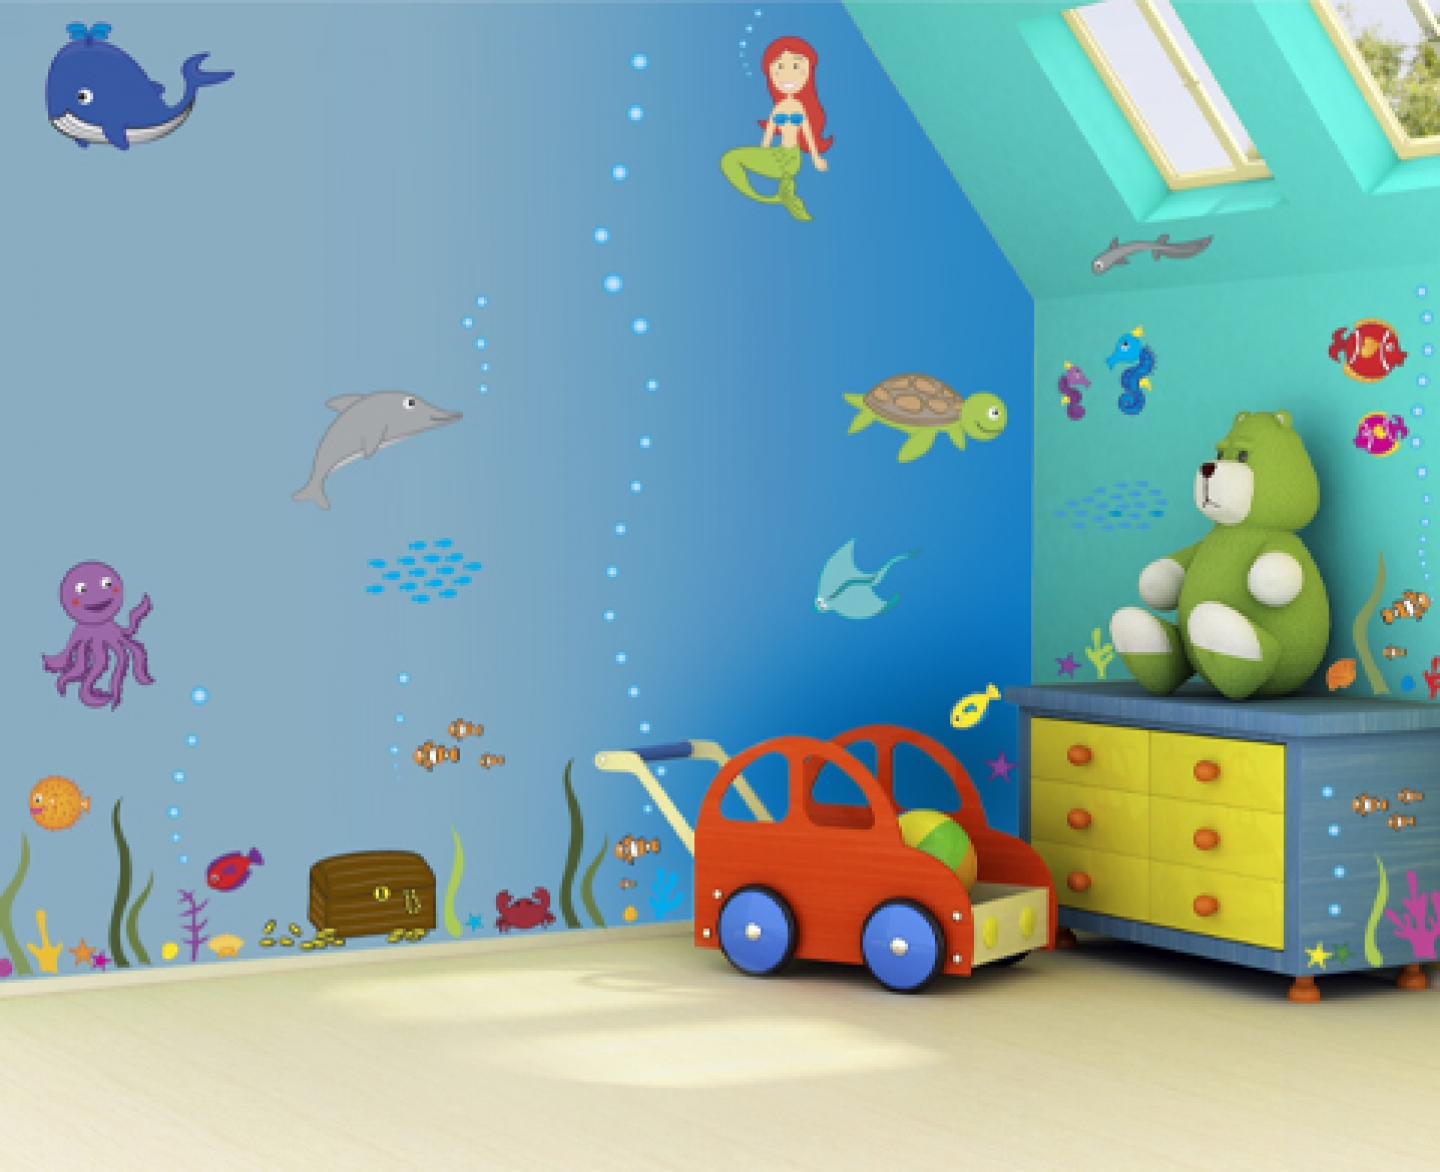 Wall Art Decor Ideas For Kids Room My Decorative